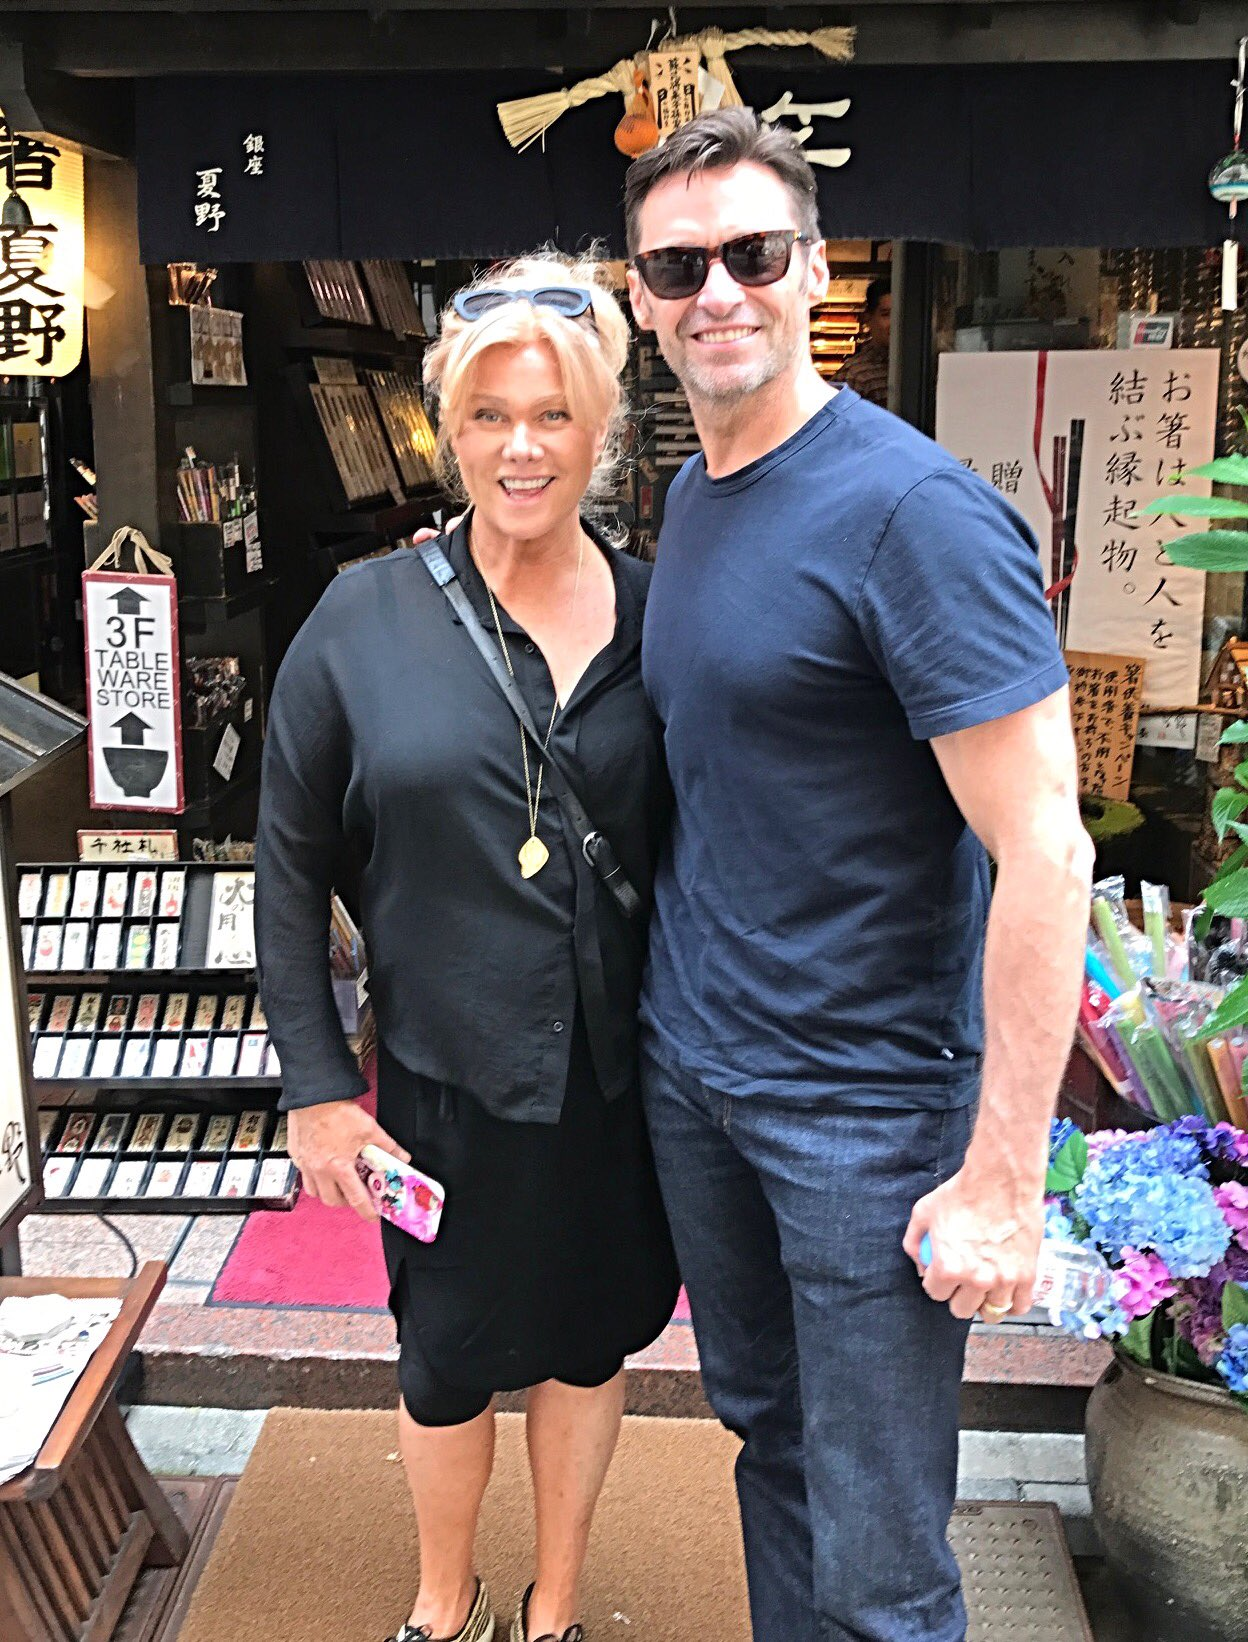 An extraordinary day with the most amazing woman. @Deborra_lee #Tokyo https://t.co/FXTD2uxvsi